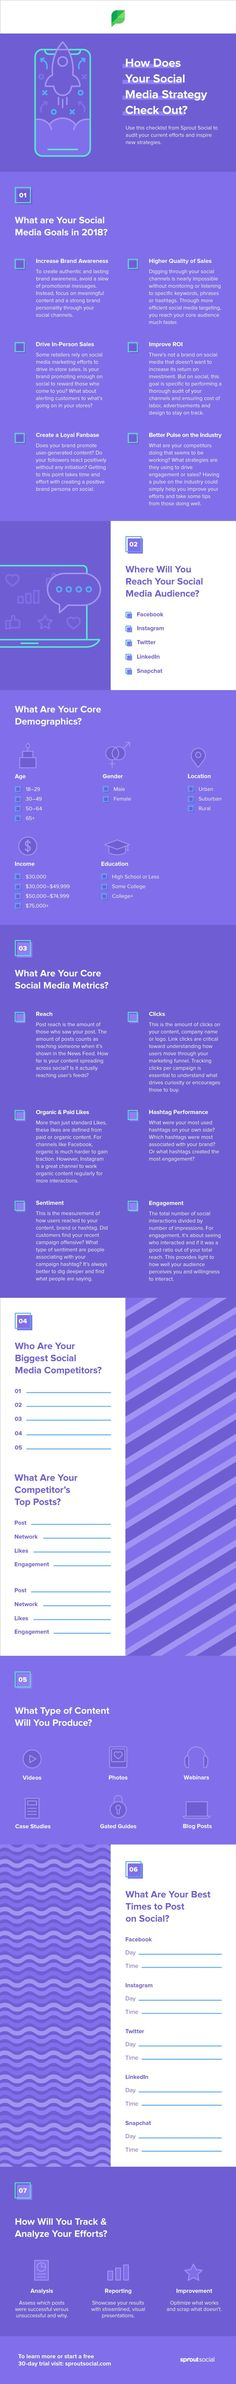 7 Steps to Create a Winning Social Media Marketing Strategy in 2018 [Infographic]